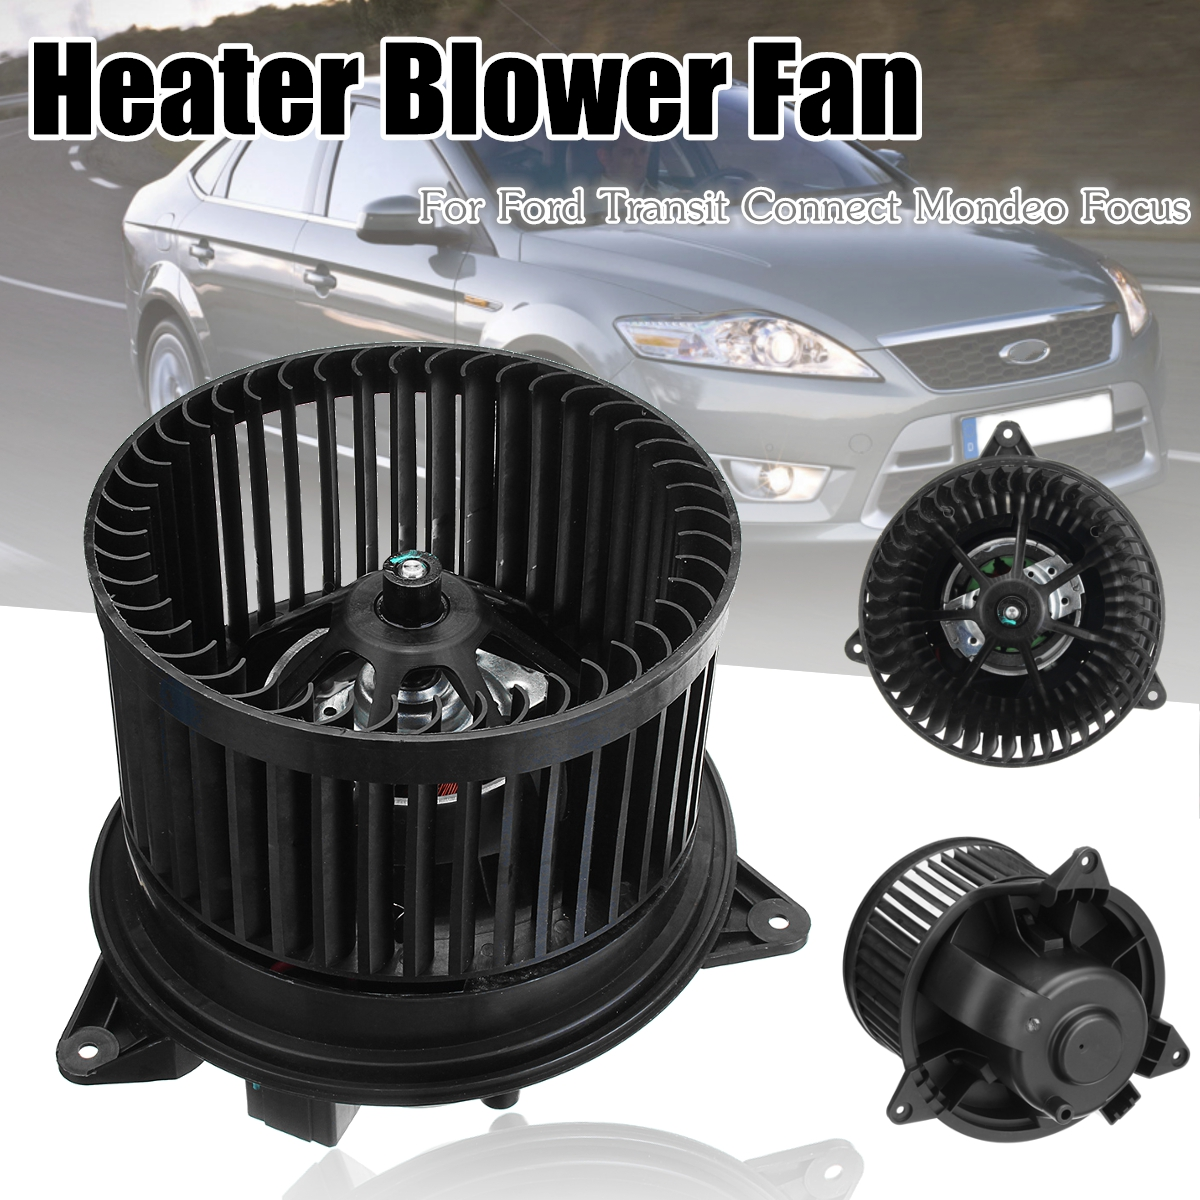 1151989 1116783 Car Air Heater Blower Fan Motor For Ford